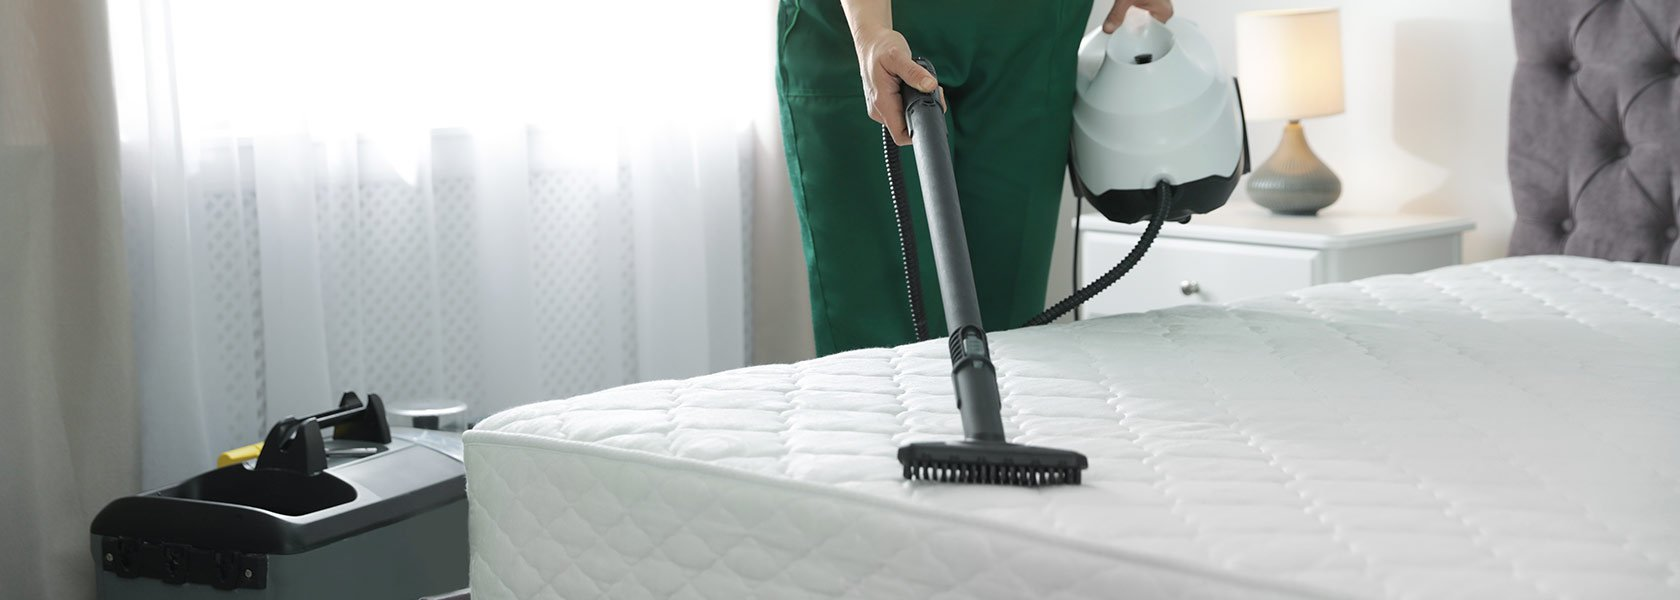 Mattress Cleaning Services in Dubai